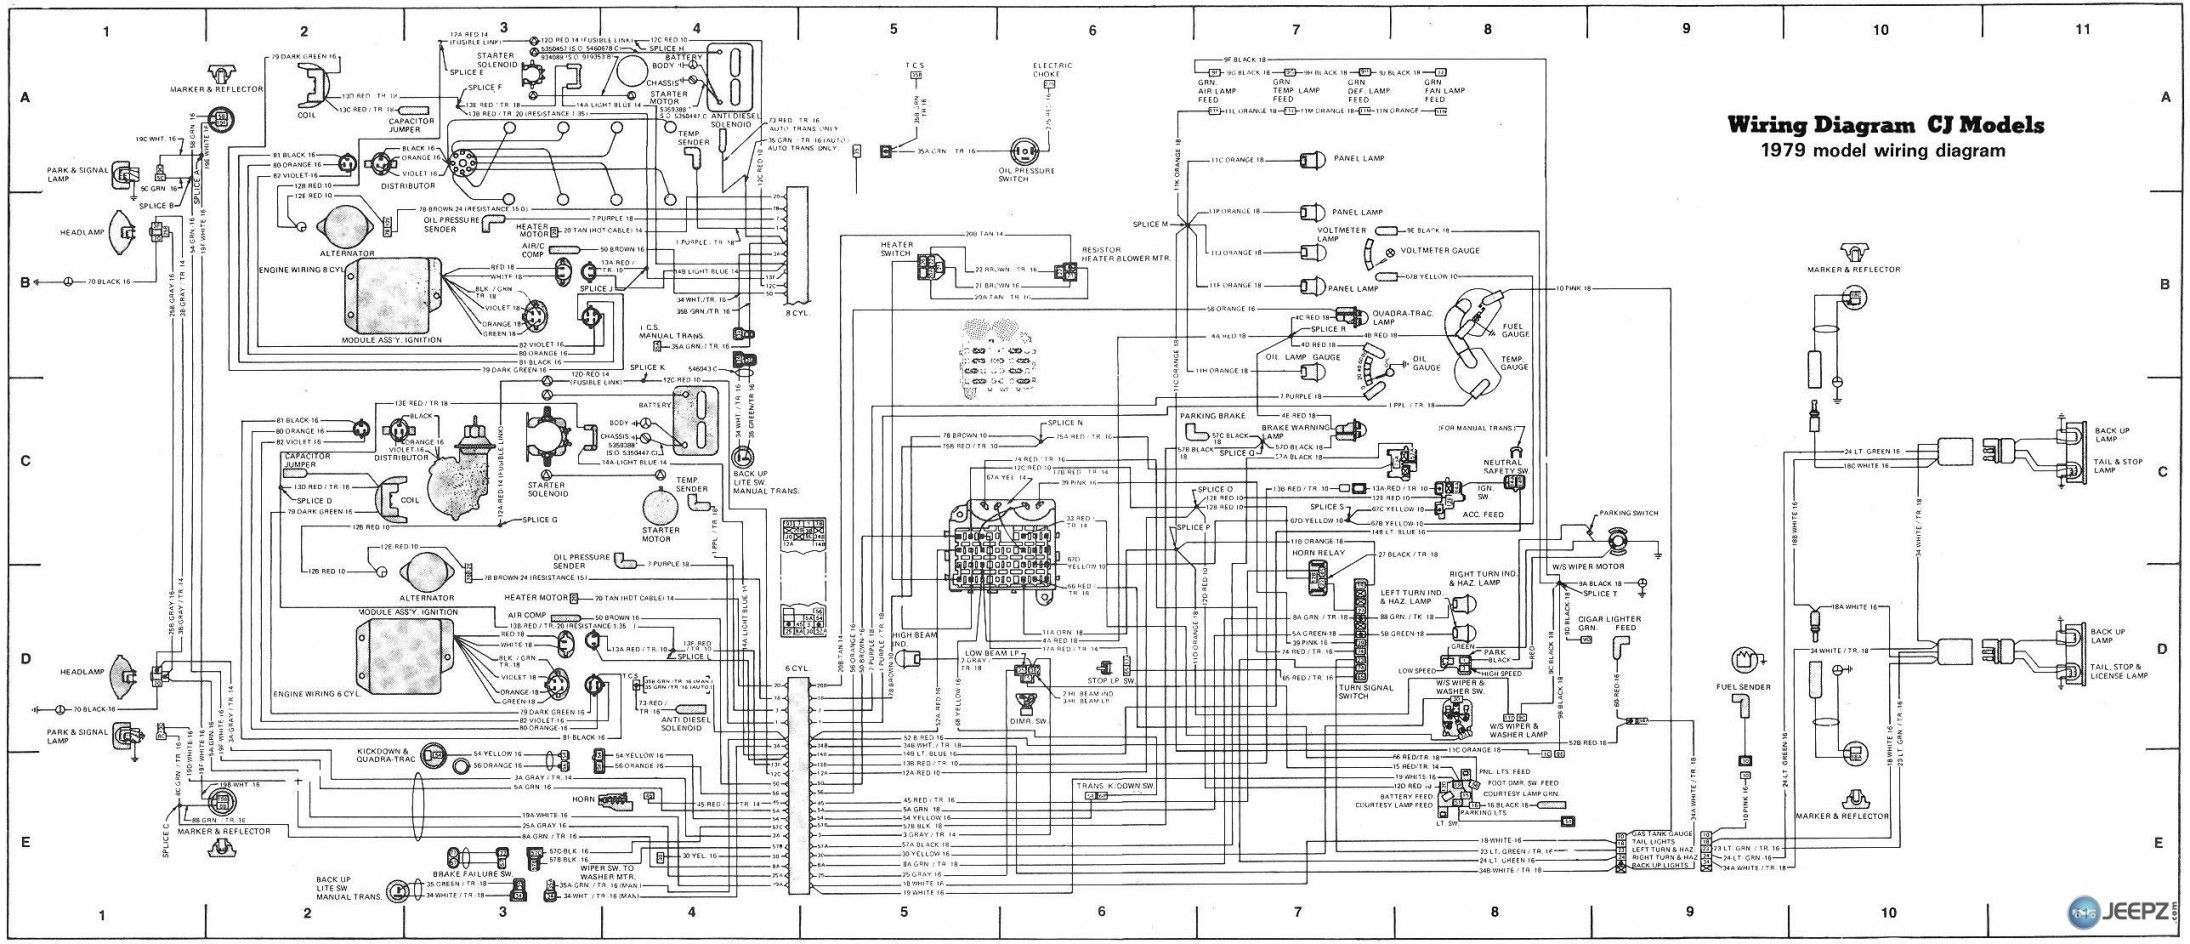 c4c359dcc66b57df1eb5c89481254ced  Cj Wiring Diagram Rear on 86 cj7 wiper motor, cj7 wiring harness diagram, 1983 cj7 vacuum lines diagram, 1980 v8 cj7 starting wire diagram, 85 cj7 wiring diagram, jeep cj7 engine diagram, cj7 fuel line diagram, cj7 heater diagram, 258 jeep engine wiring diagram, 84 cj7 fuel diagram, cj7 tail light wiring diagram, 86 cj7 distributor diagram,